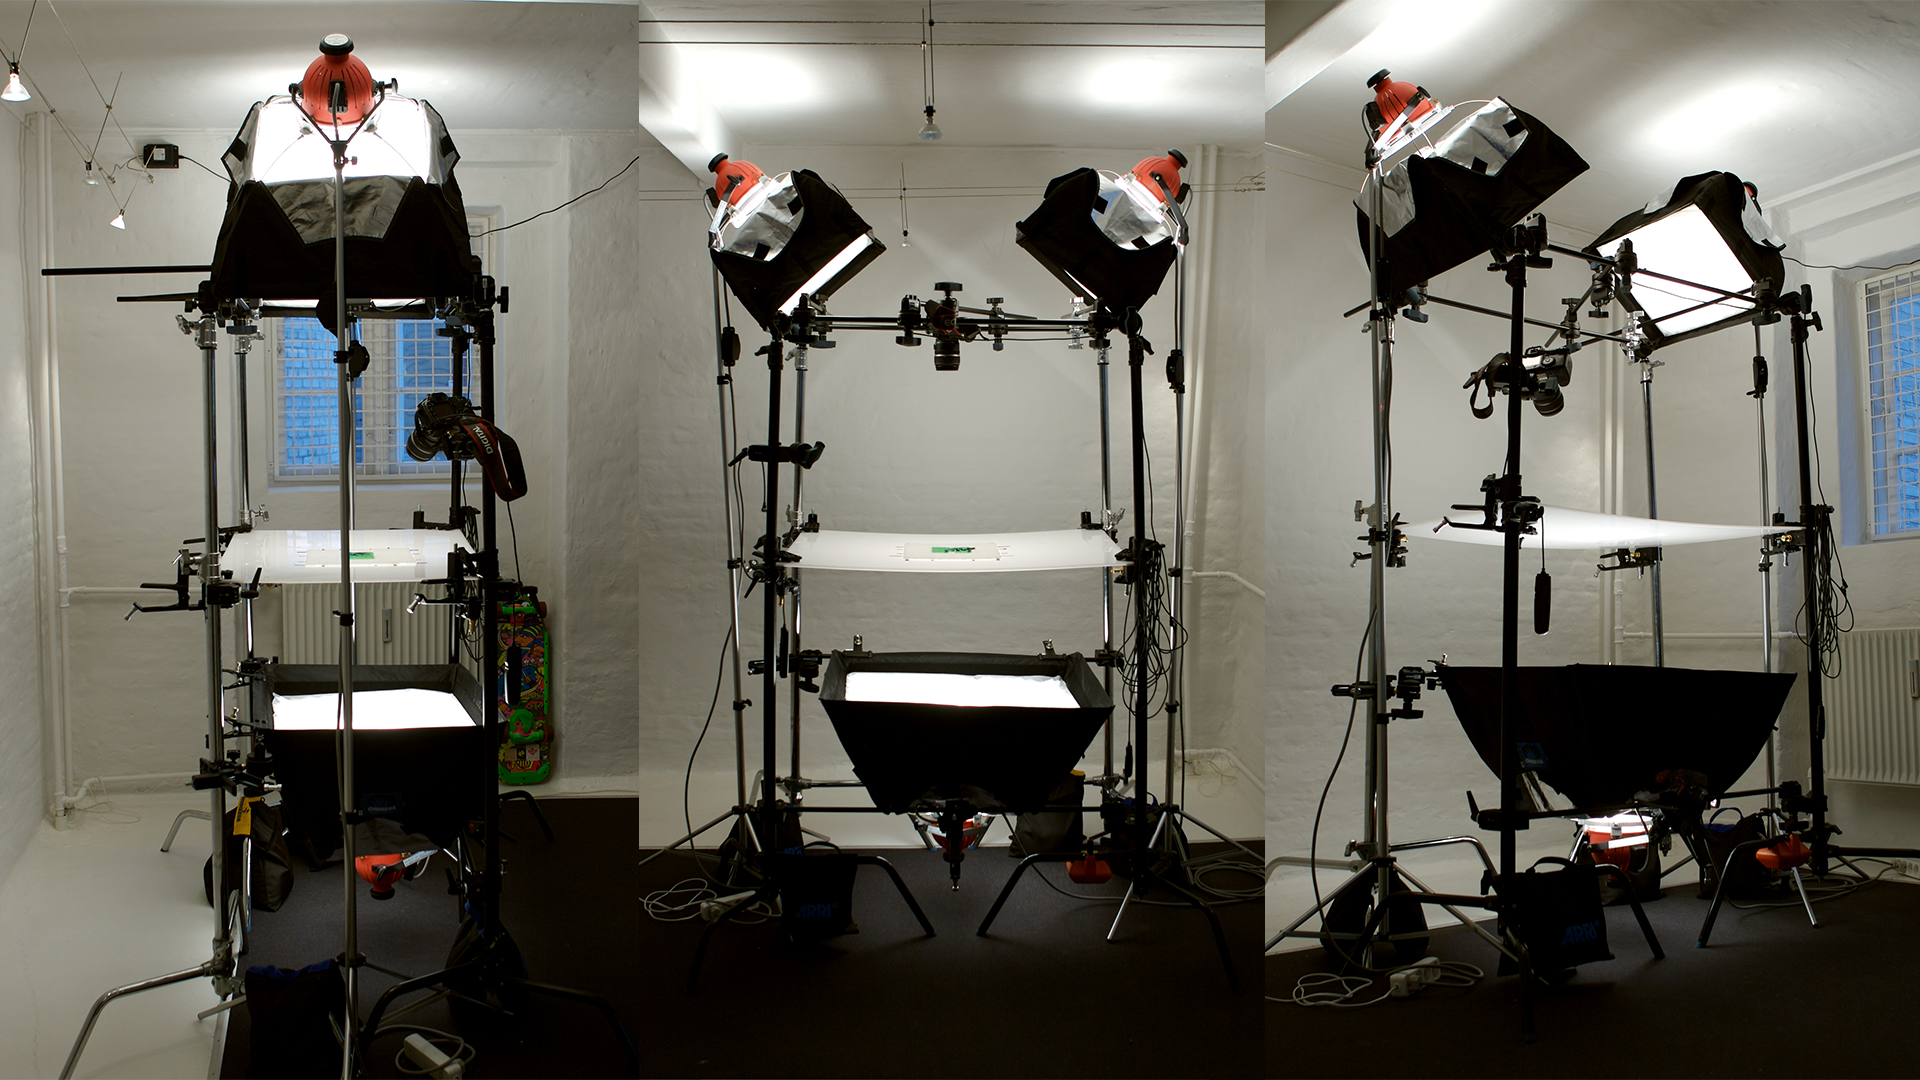 Staging & lighting for stop motion.